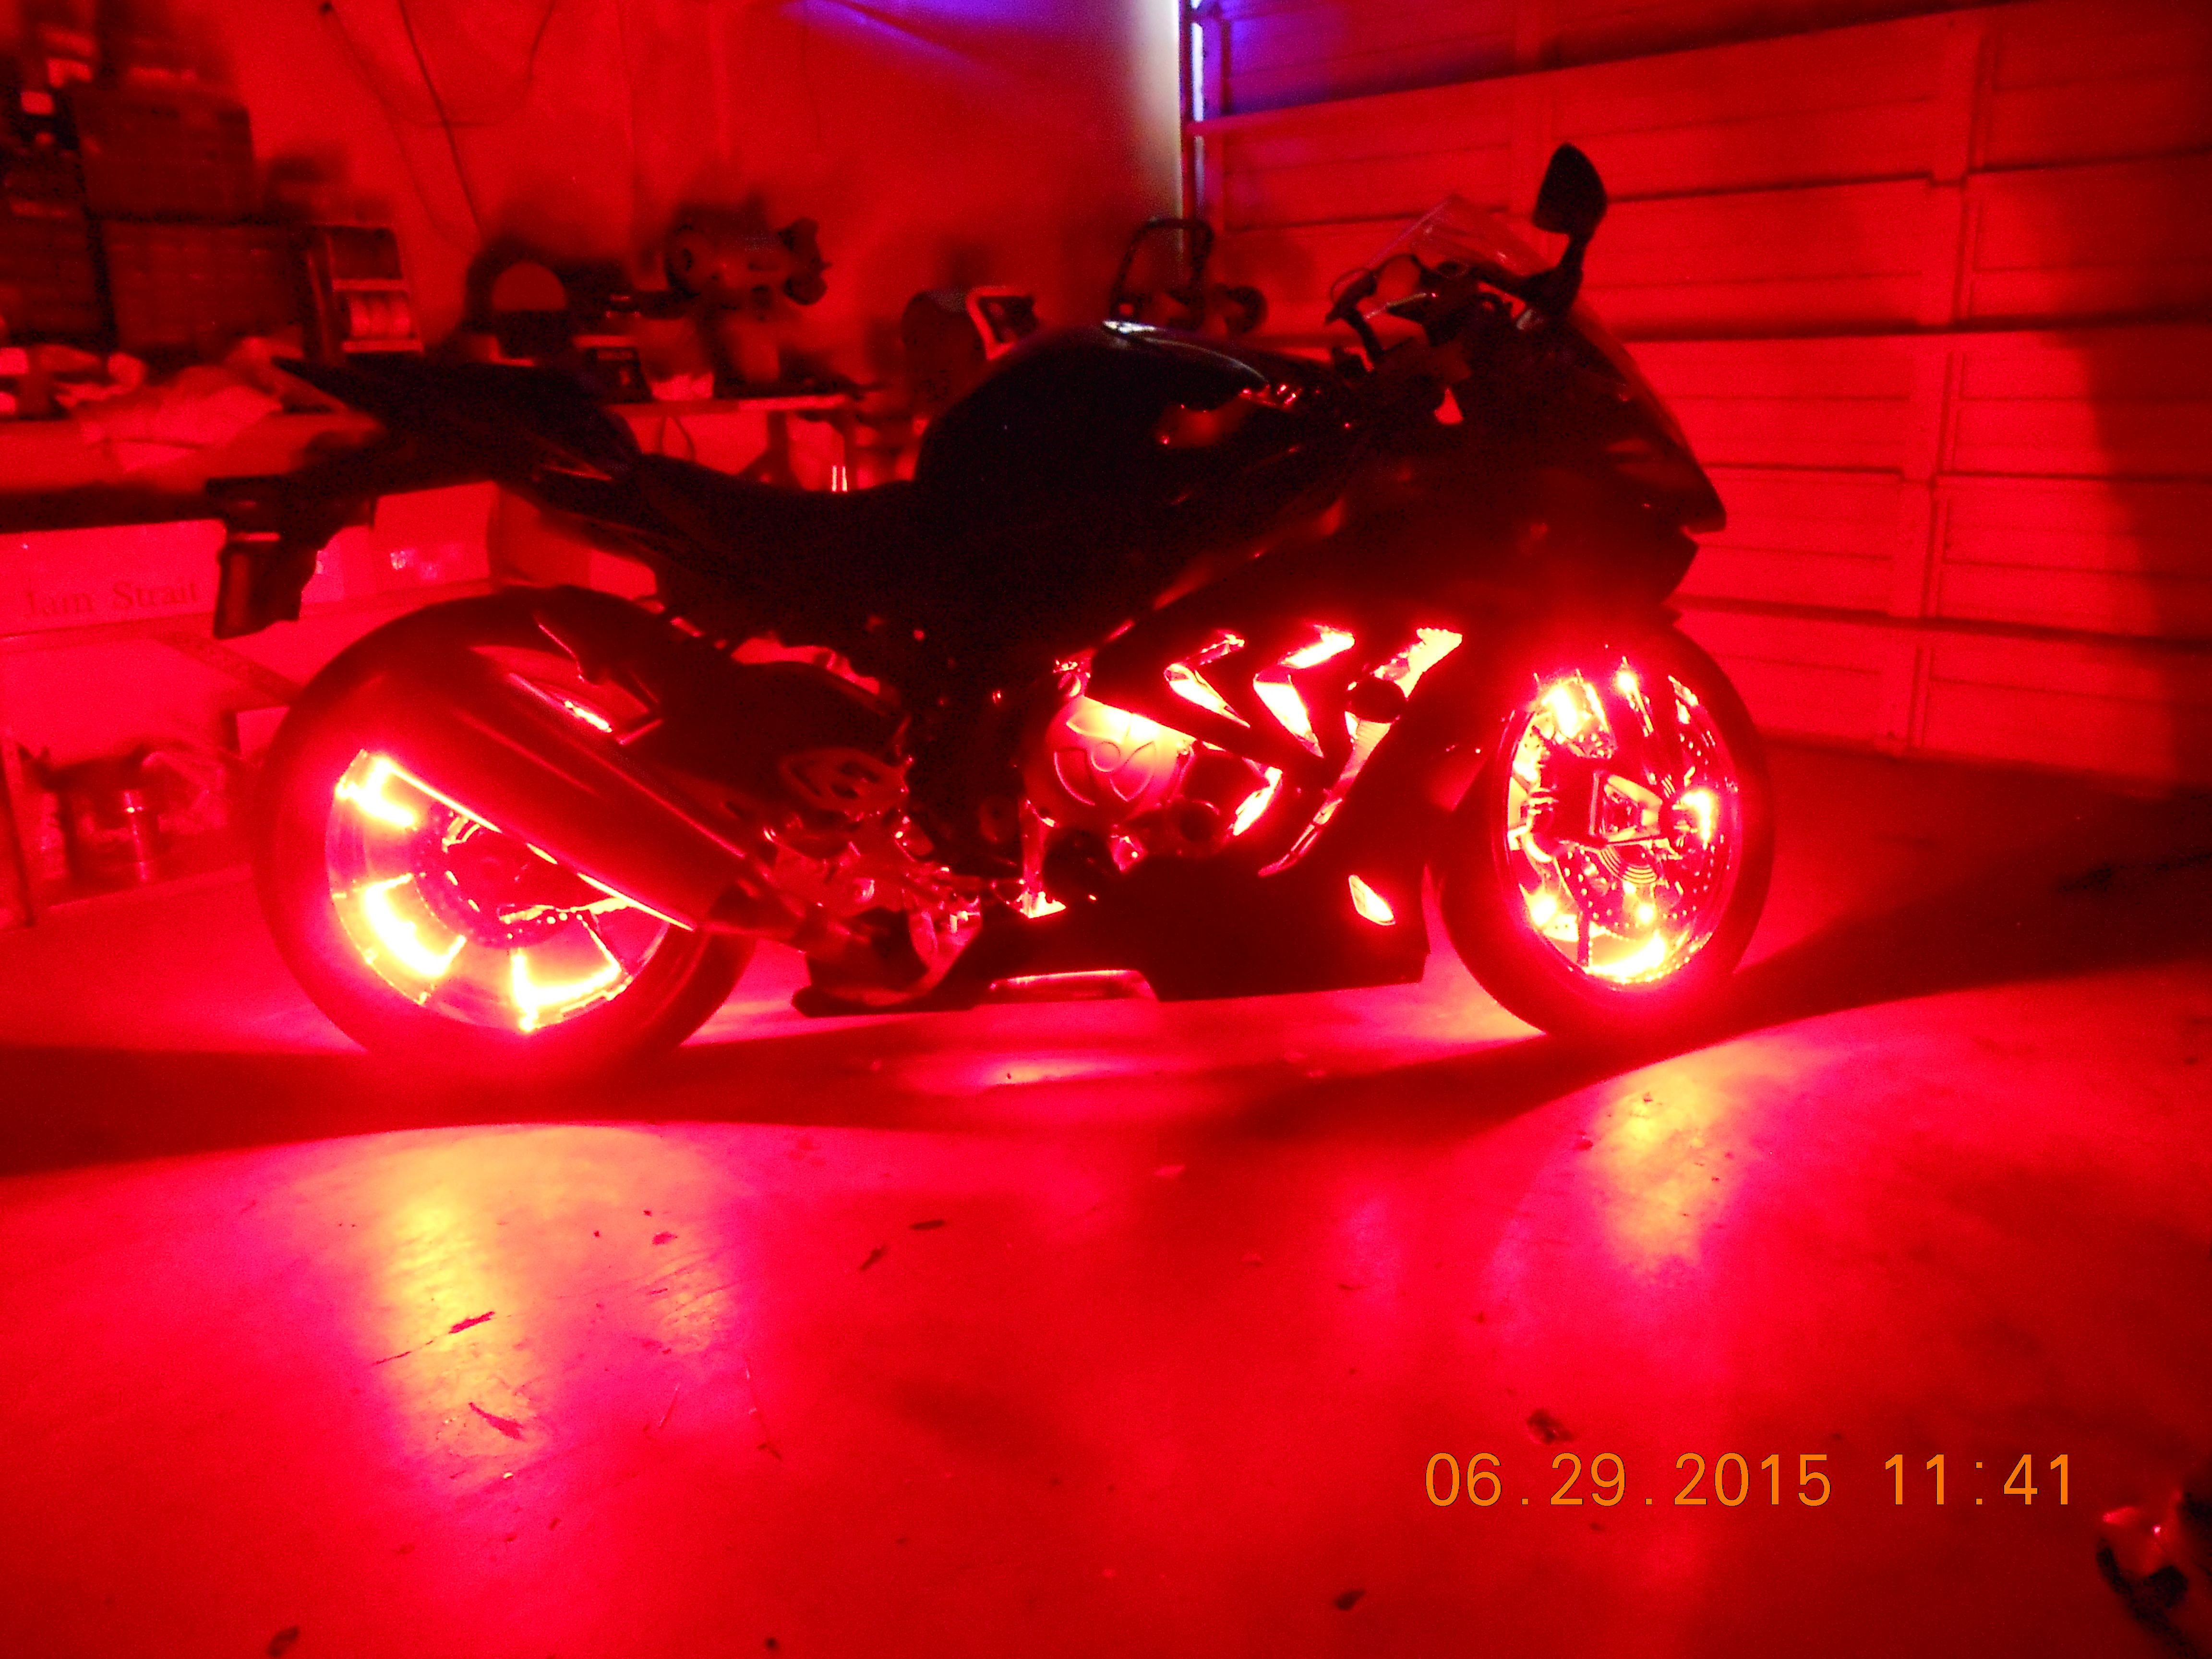 check out these pics of this custom led accent light job on this 2015 bmw s1000rr motorcycle lights motorcycle led lighting bmw s1000rr